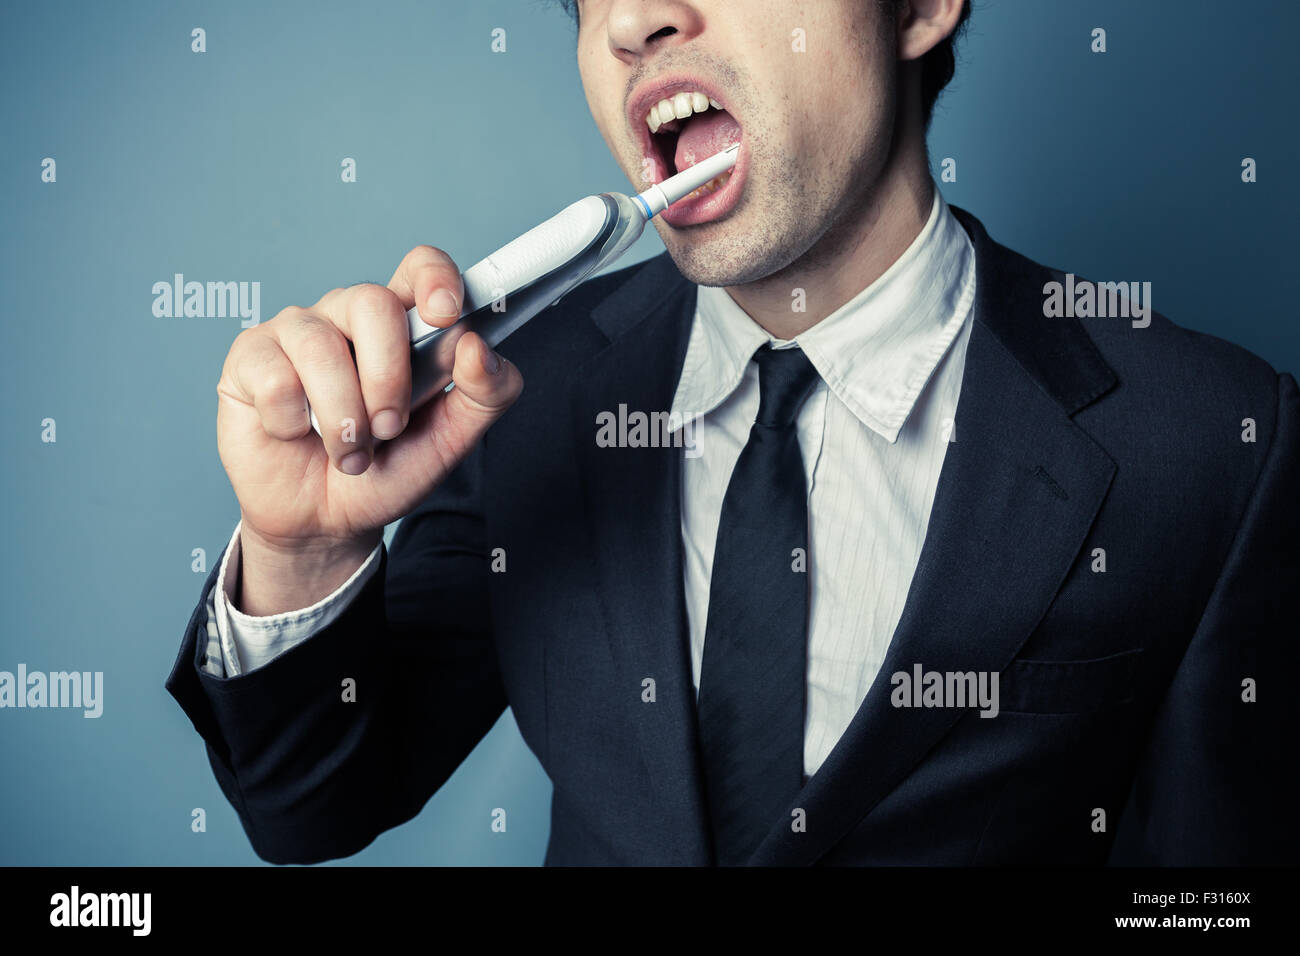 Young businessman is brushing his teeth with an electric toothbrush - Stock Image